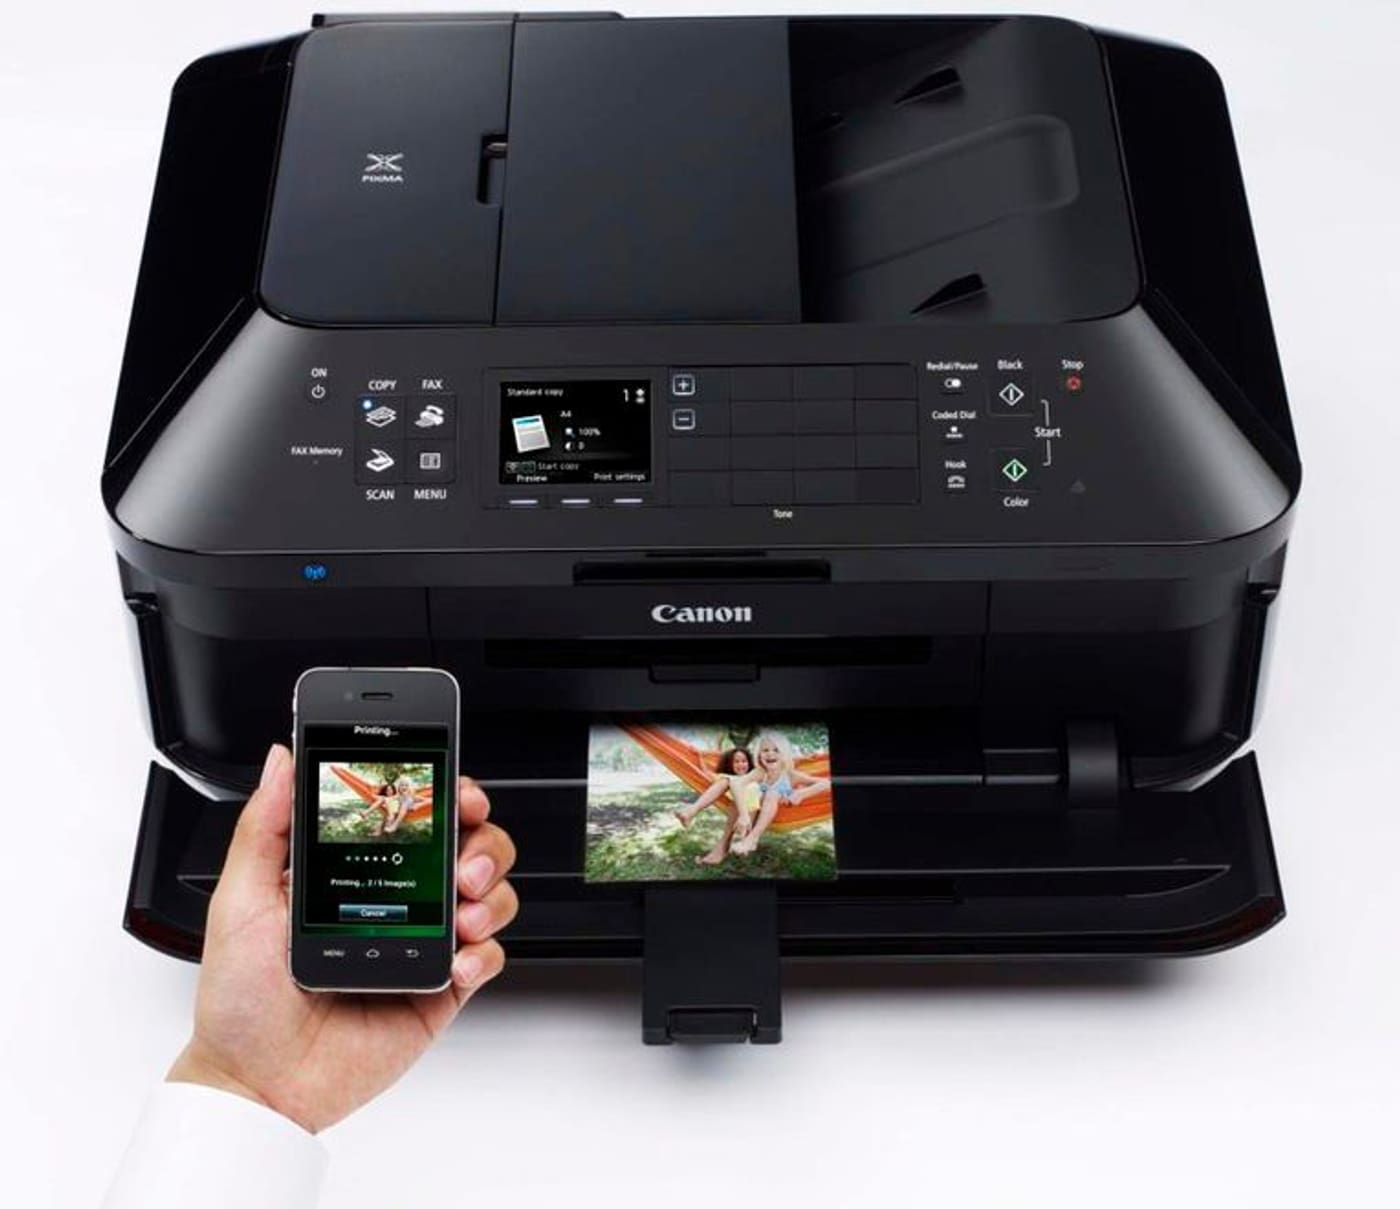 canon pixma mx925 drucker scanner kopierer fax migros. Black Bedroom Furniture Sets. Home Design Ideas